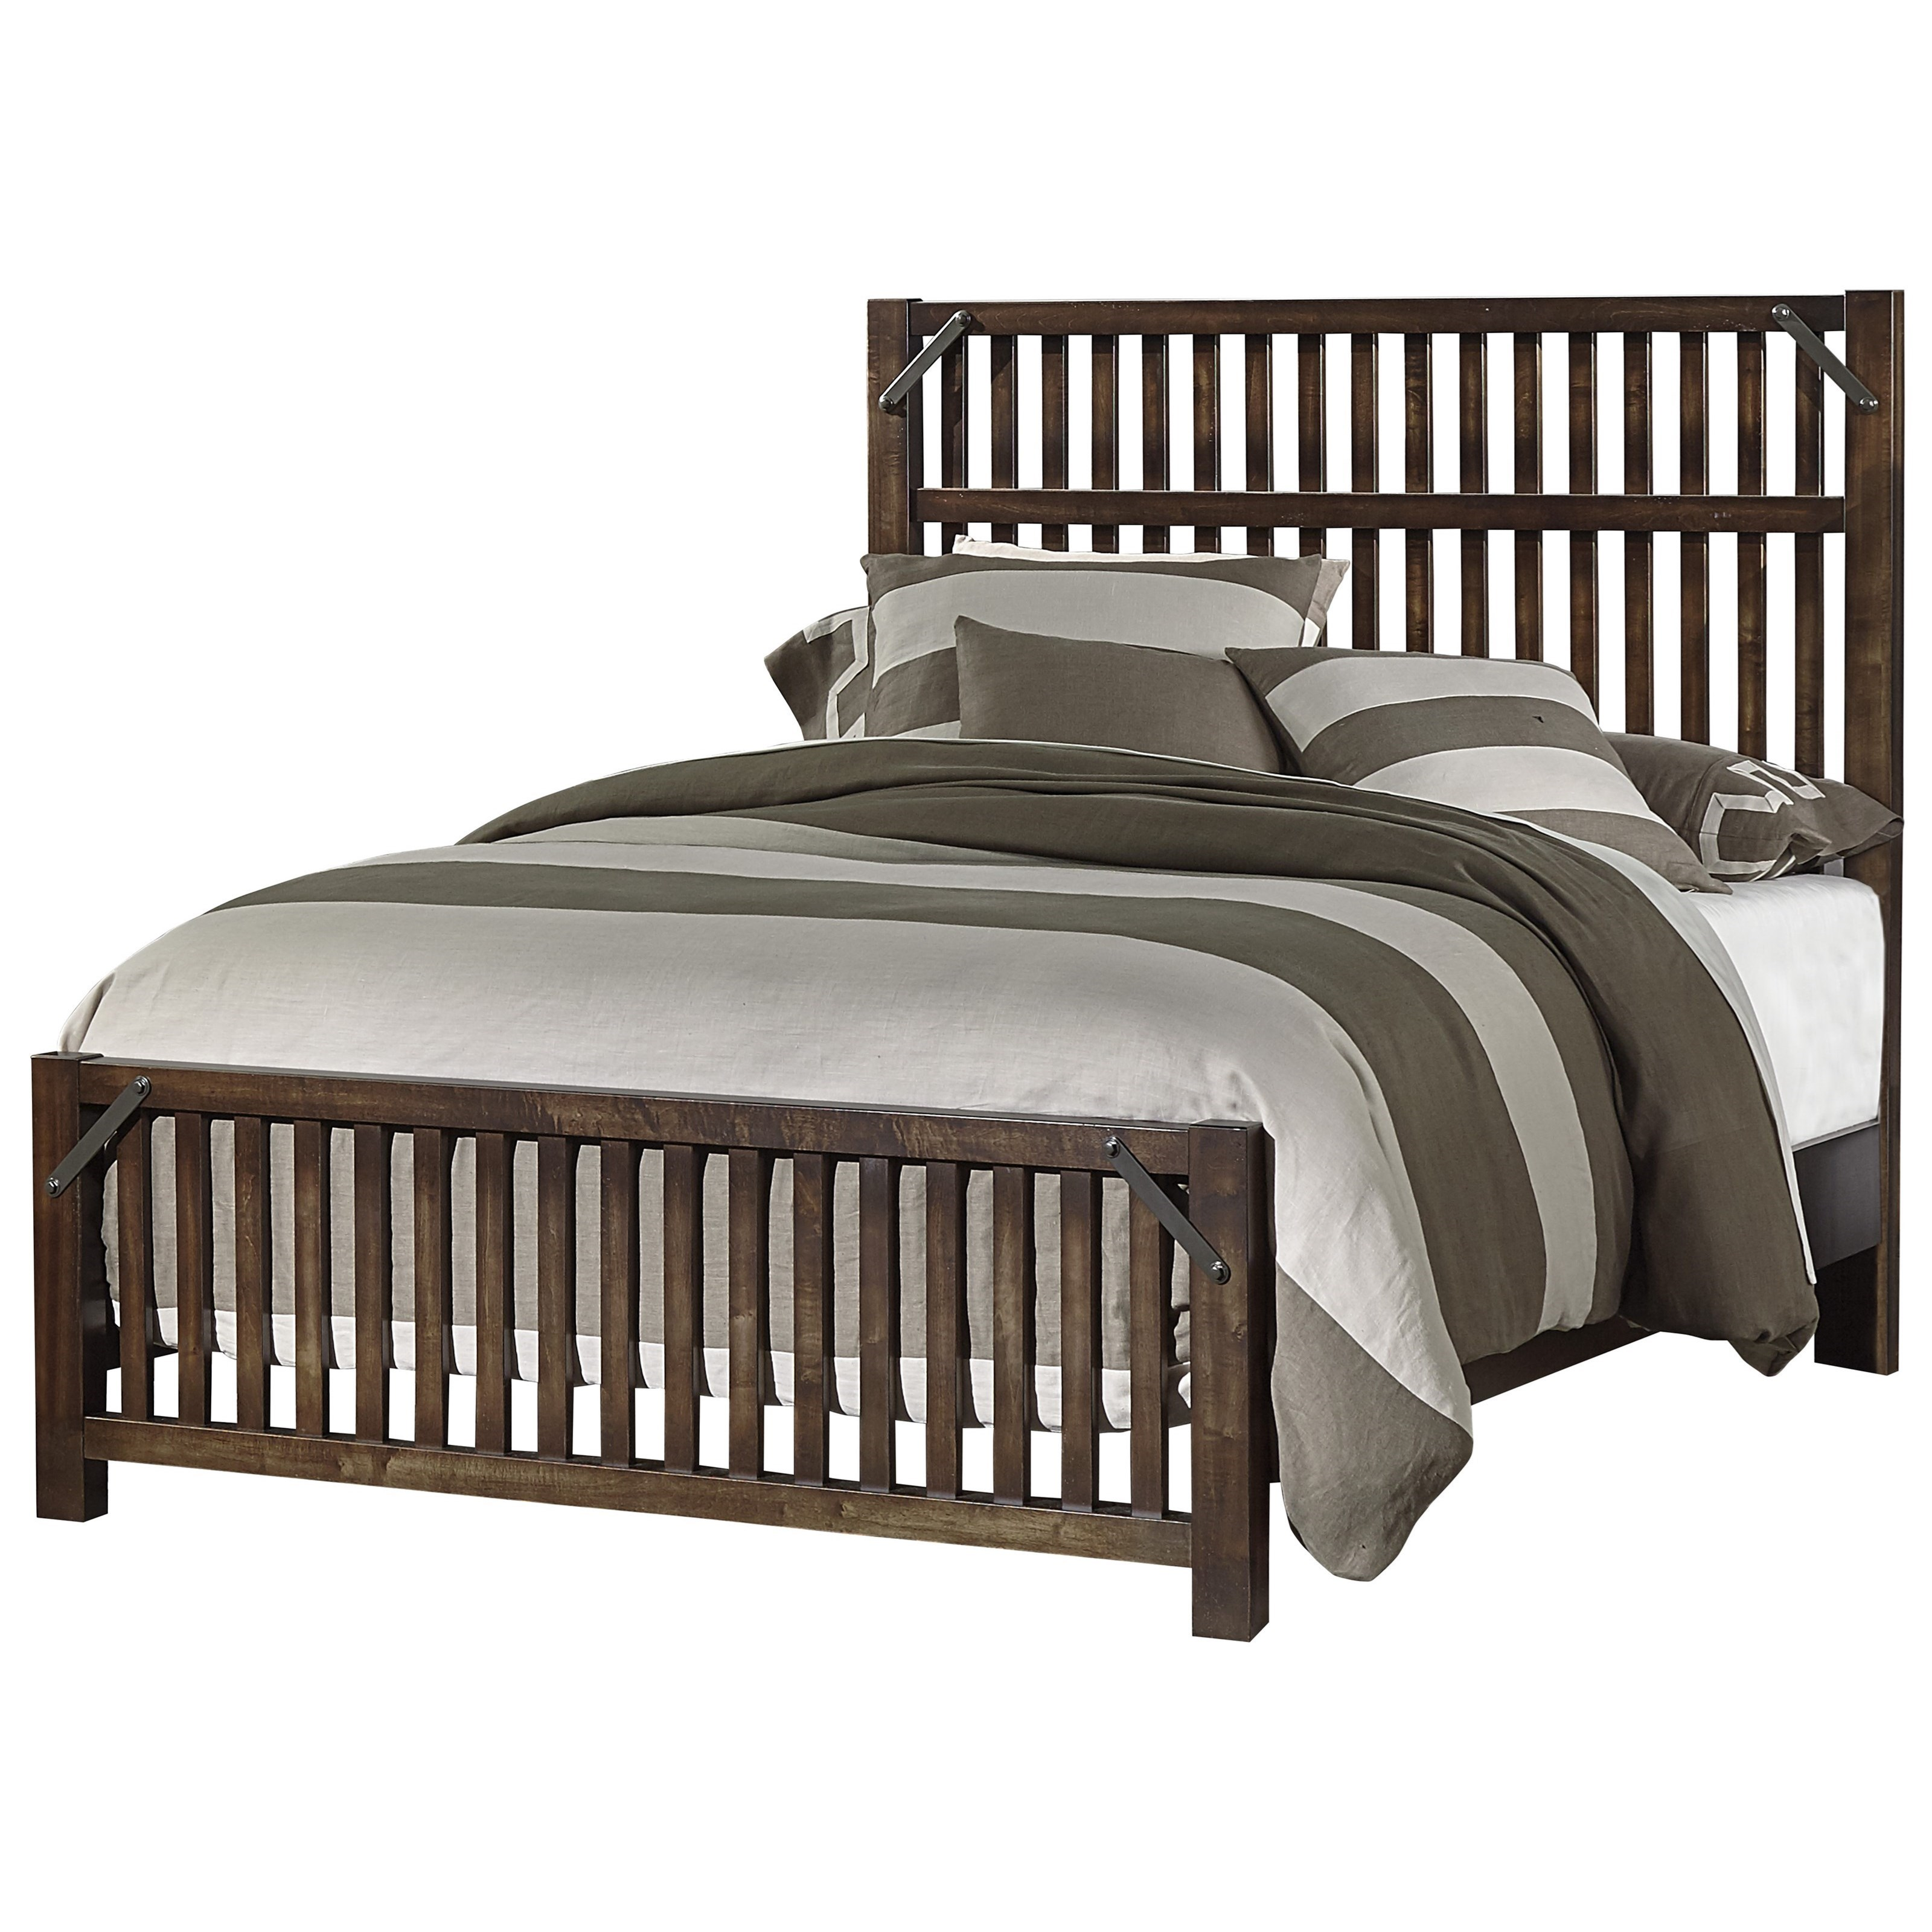 Sedgwick King Bed by Artisan & Post at Zak's Home